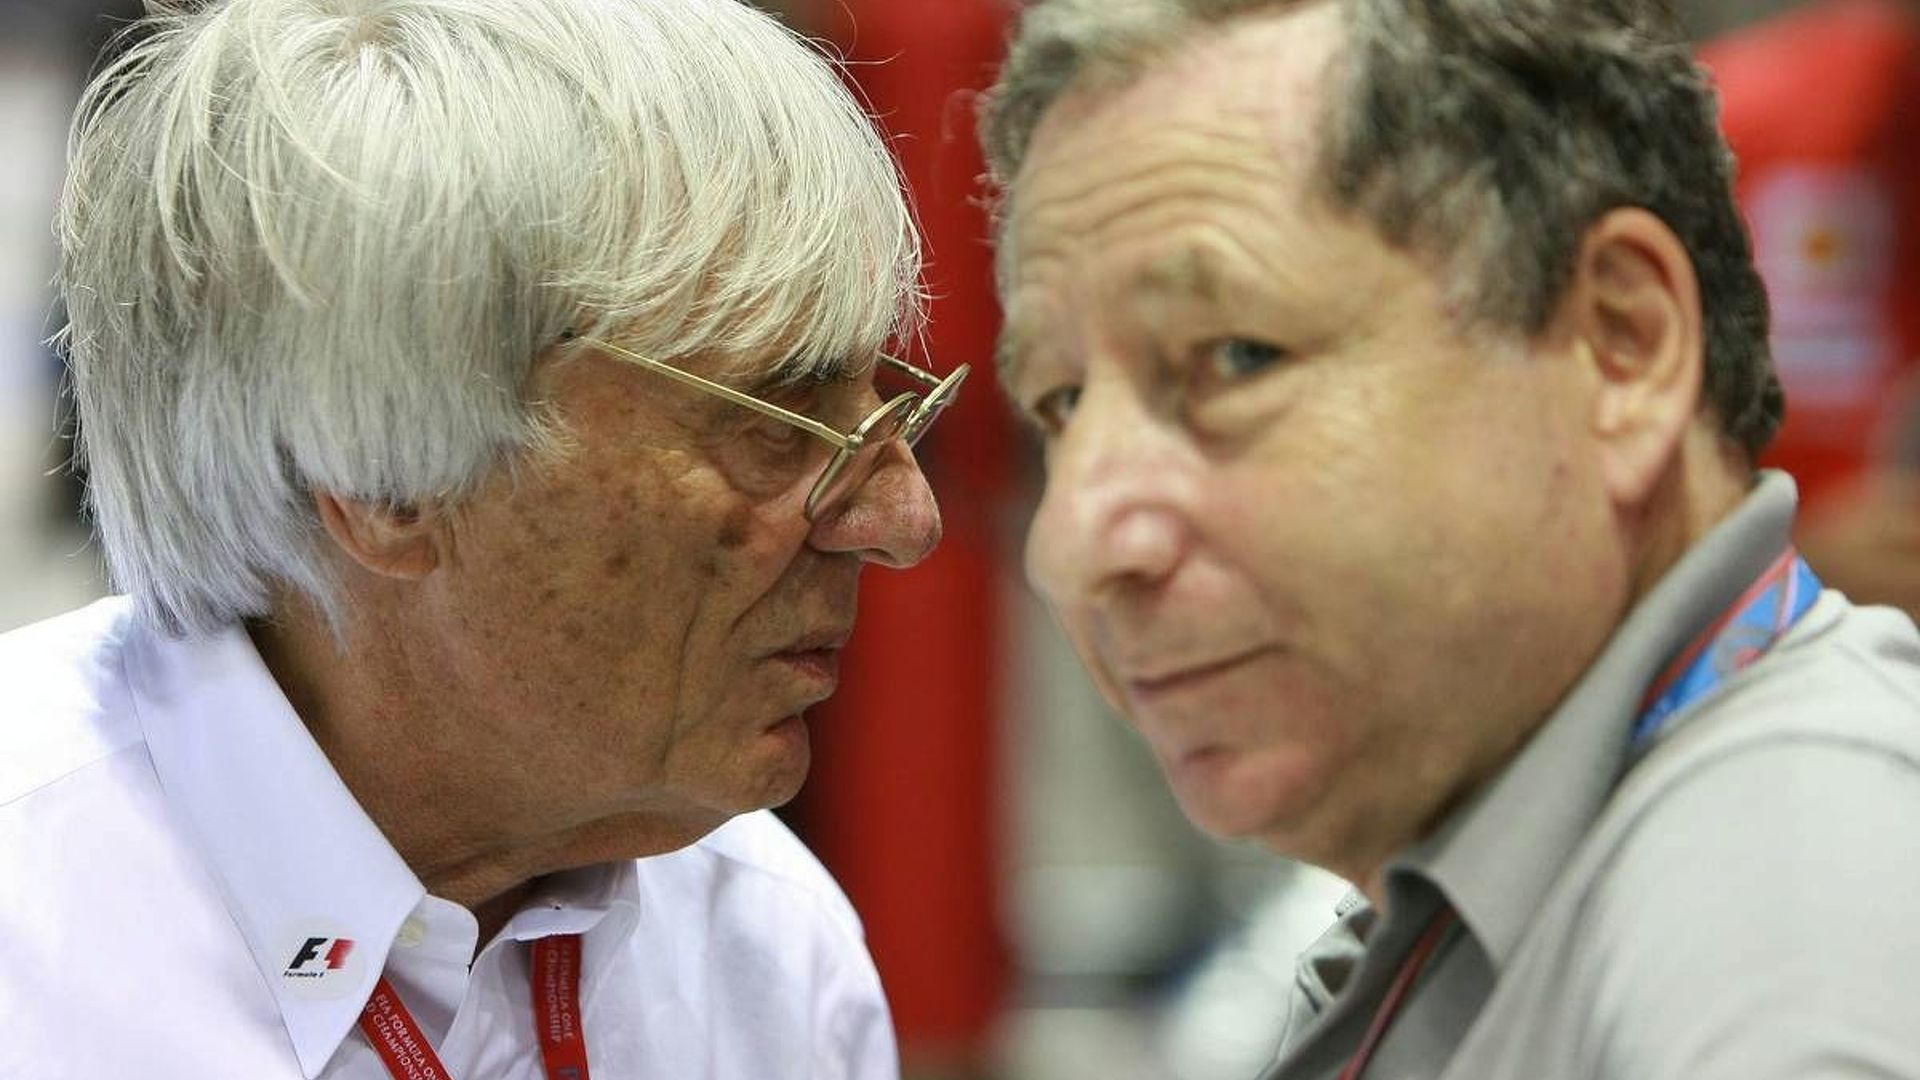 FIA still supports embattled Ecclestone - Todt